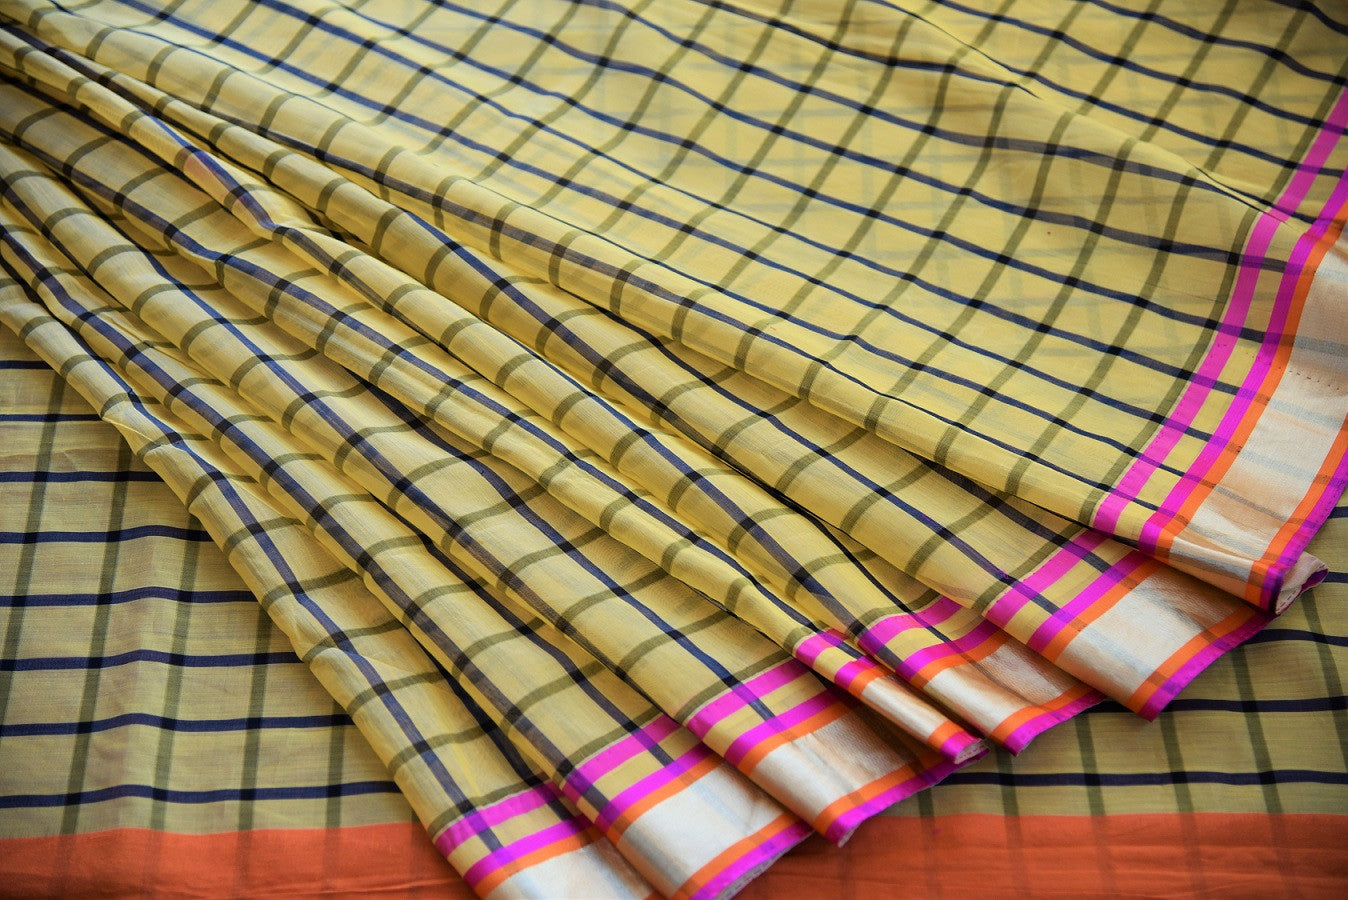 90B342 Buy this chanderi cotton silk saree online in USA at our store - Pure Elegance. The checked yellow sari with a golden, pink & orange border makes for a great Indian outfit for weddings and festive occasions.